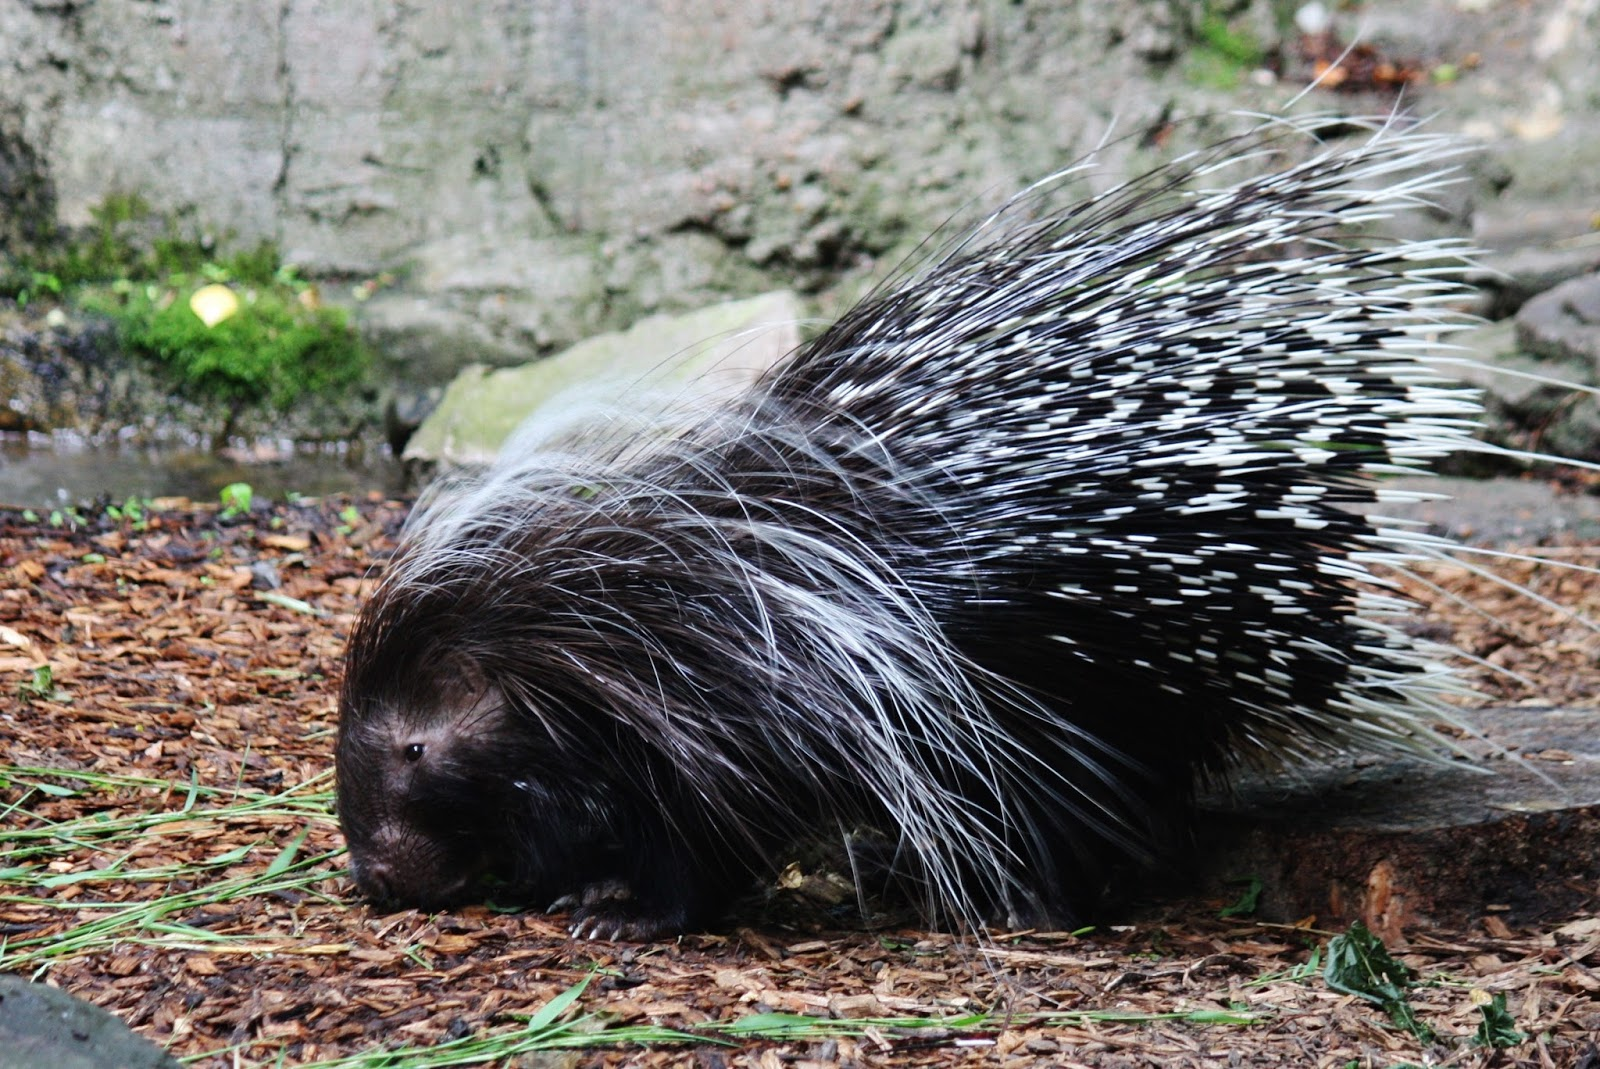 Picture of a porcupine with it's quills.